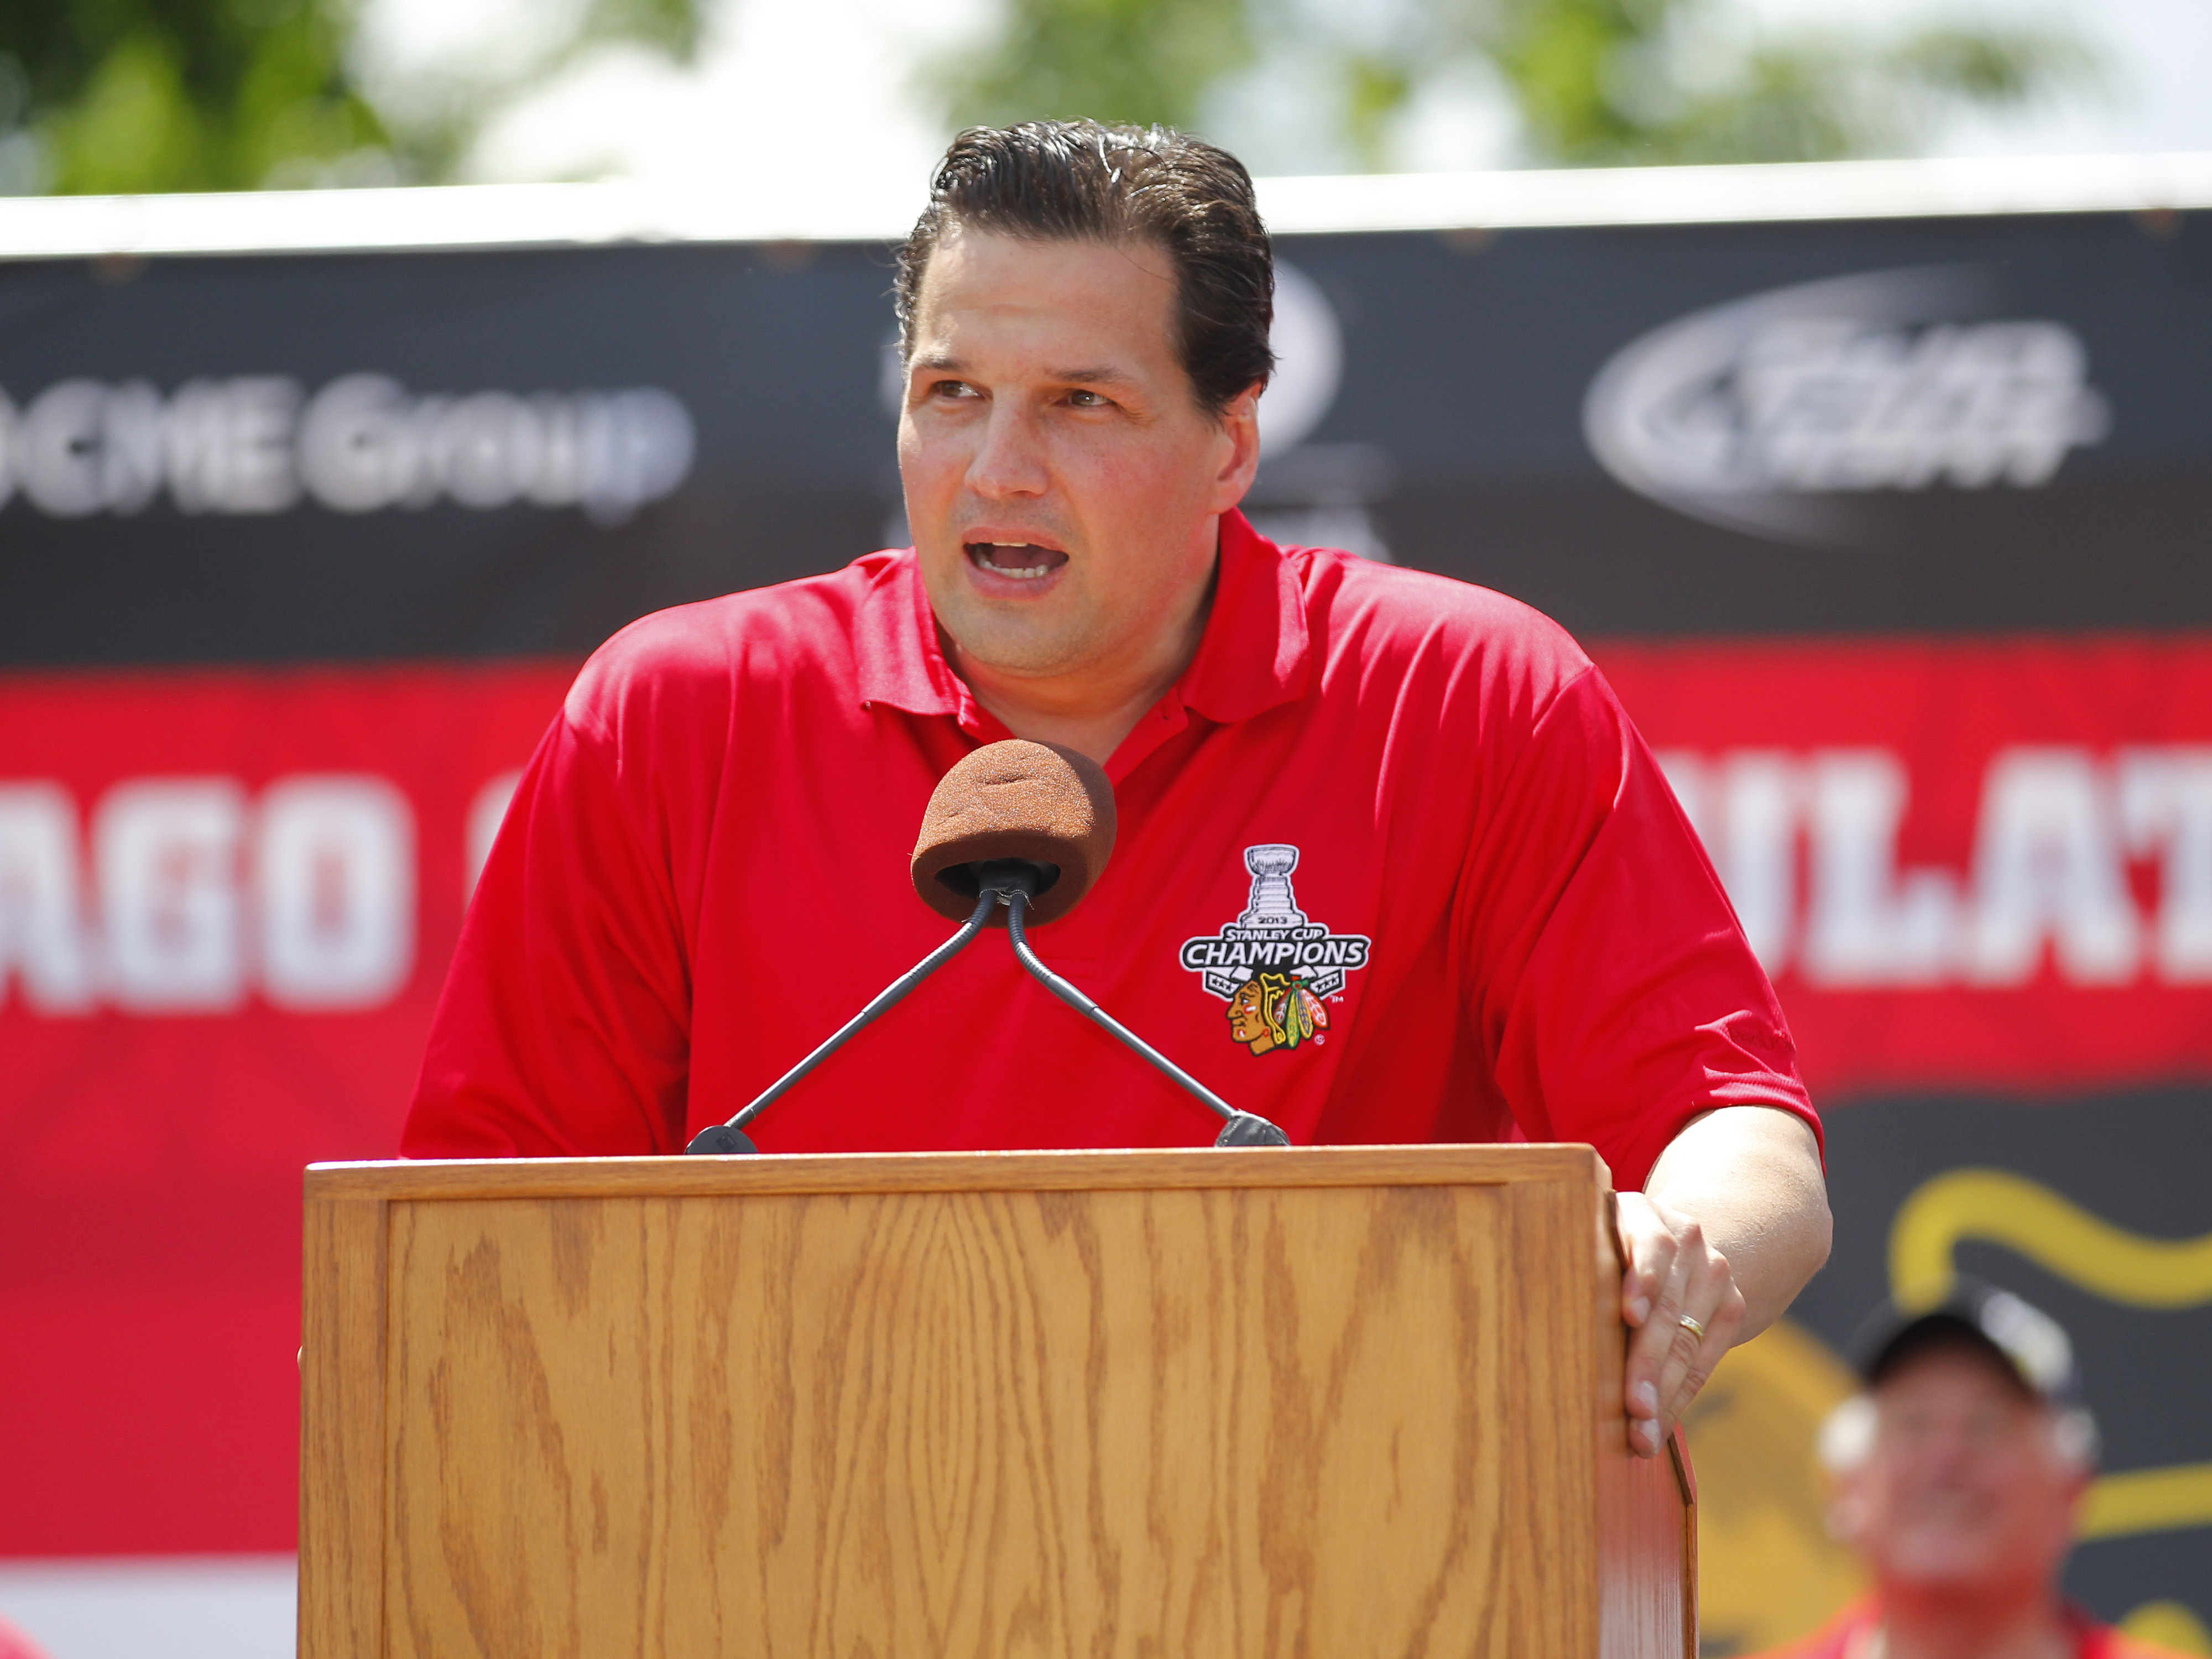 Ed Olczyk, father of Eddie Olczyk, the new assistant coach at Utica College